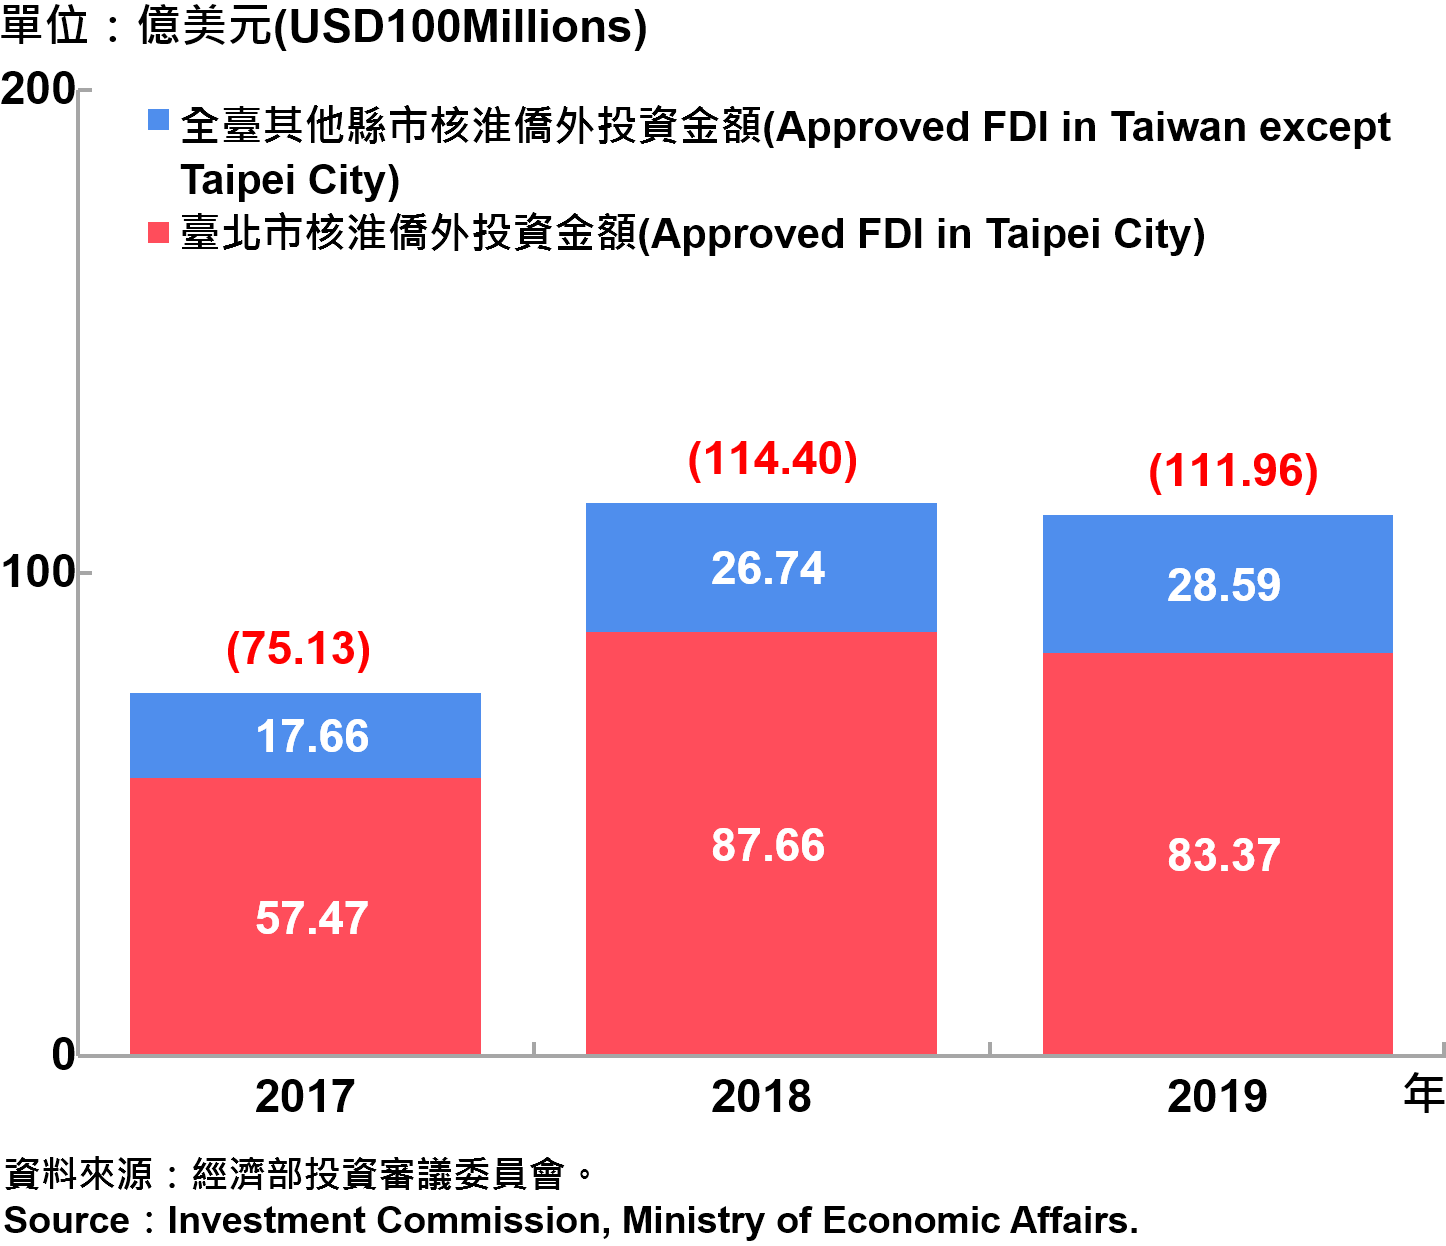 臺北市與全國僑外投資金額—2019 Foreign Direct Investment(FDI)in Taipei City and Taiwan—2019